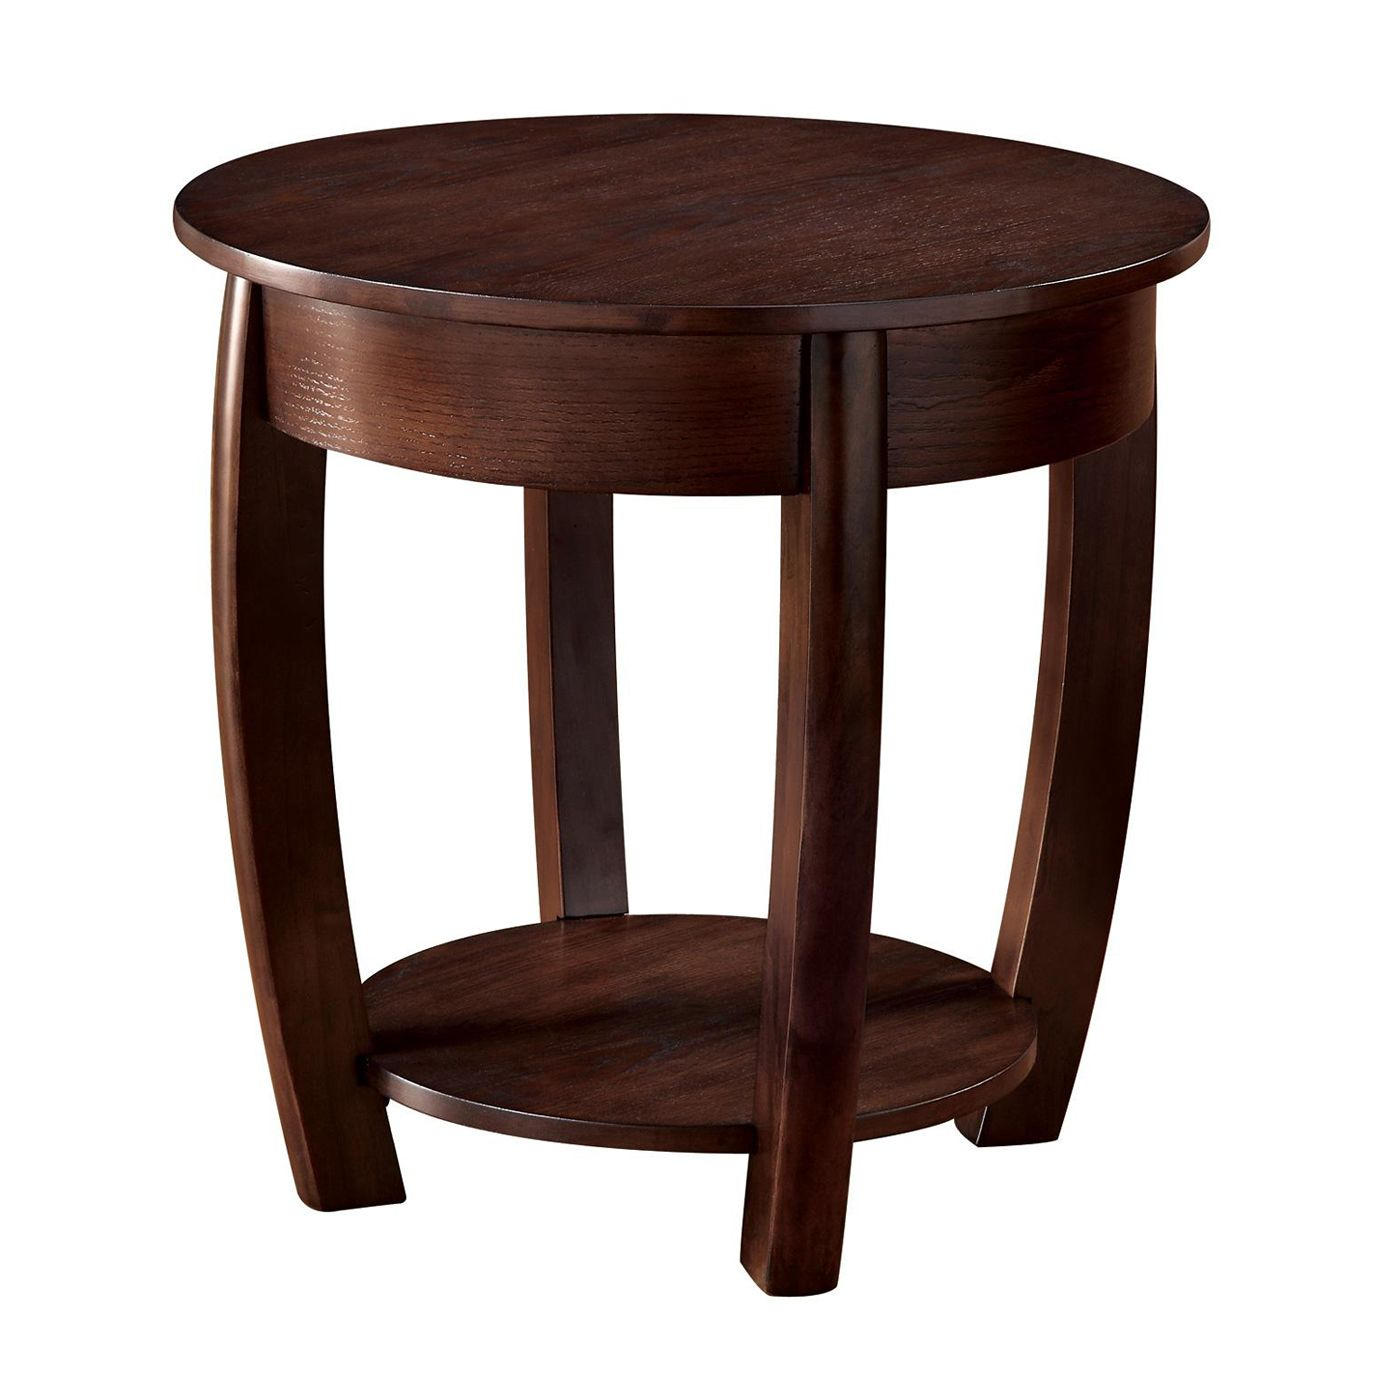 Coaster Fine Furniture 701977 End Table | ATG Stores